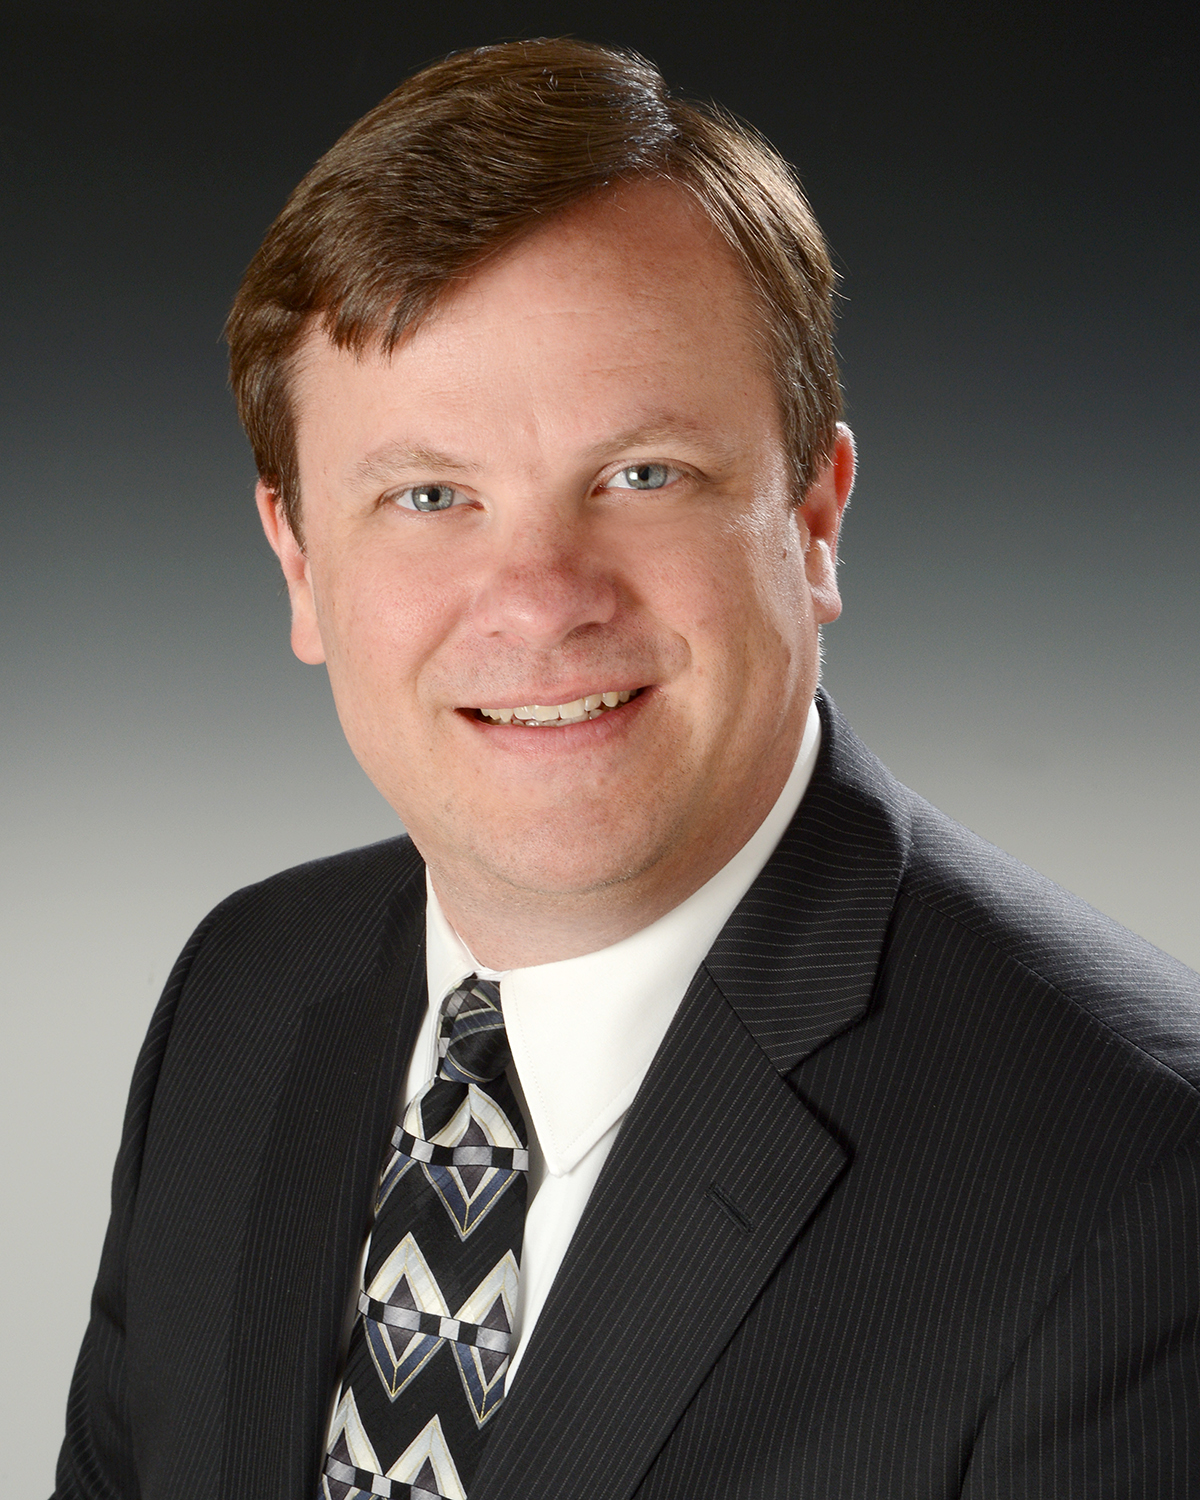 Kevin M. Hedley, MS, CPA, PFS Partner